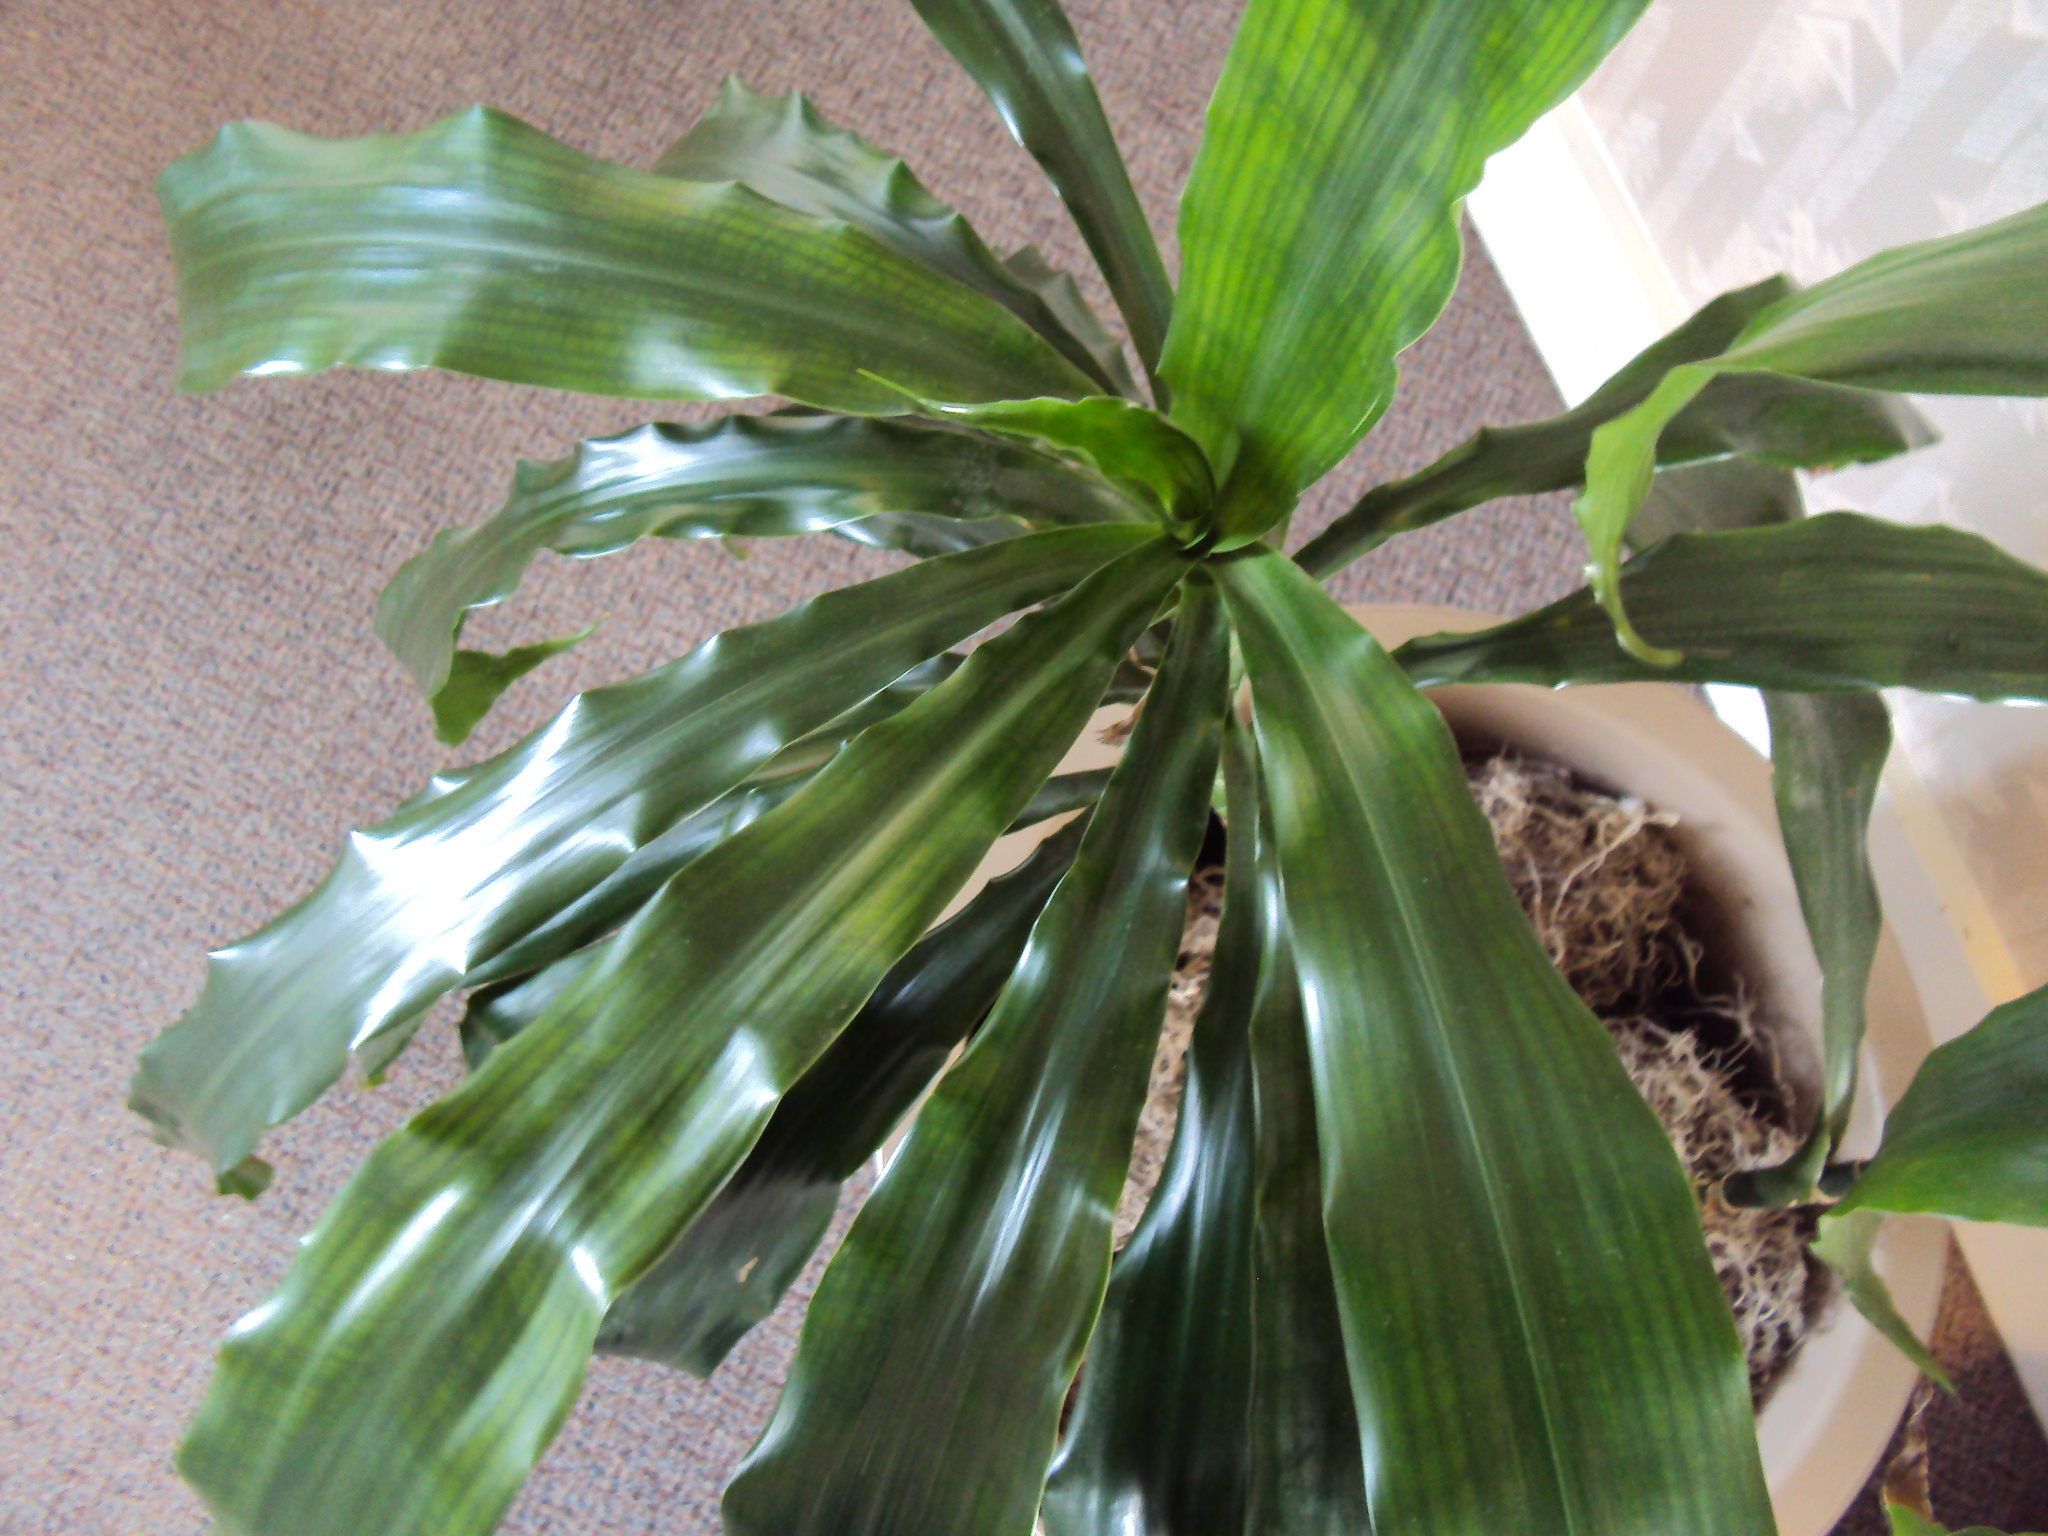 Wednesday – The Plant Lady Chronicles] How to Clean and Shine ...